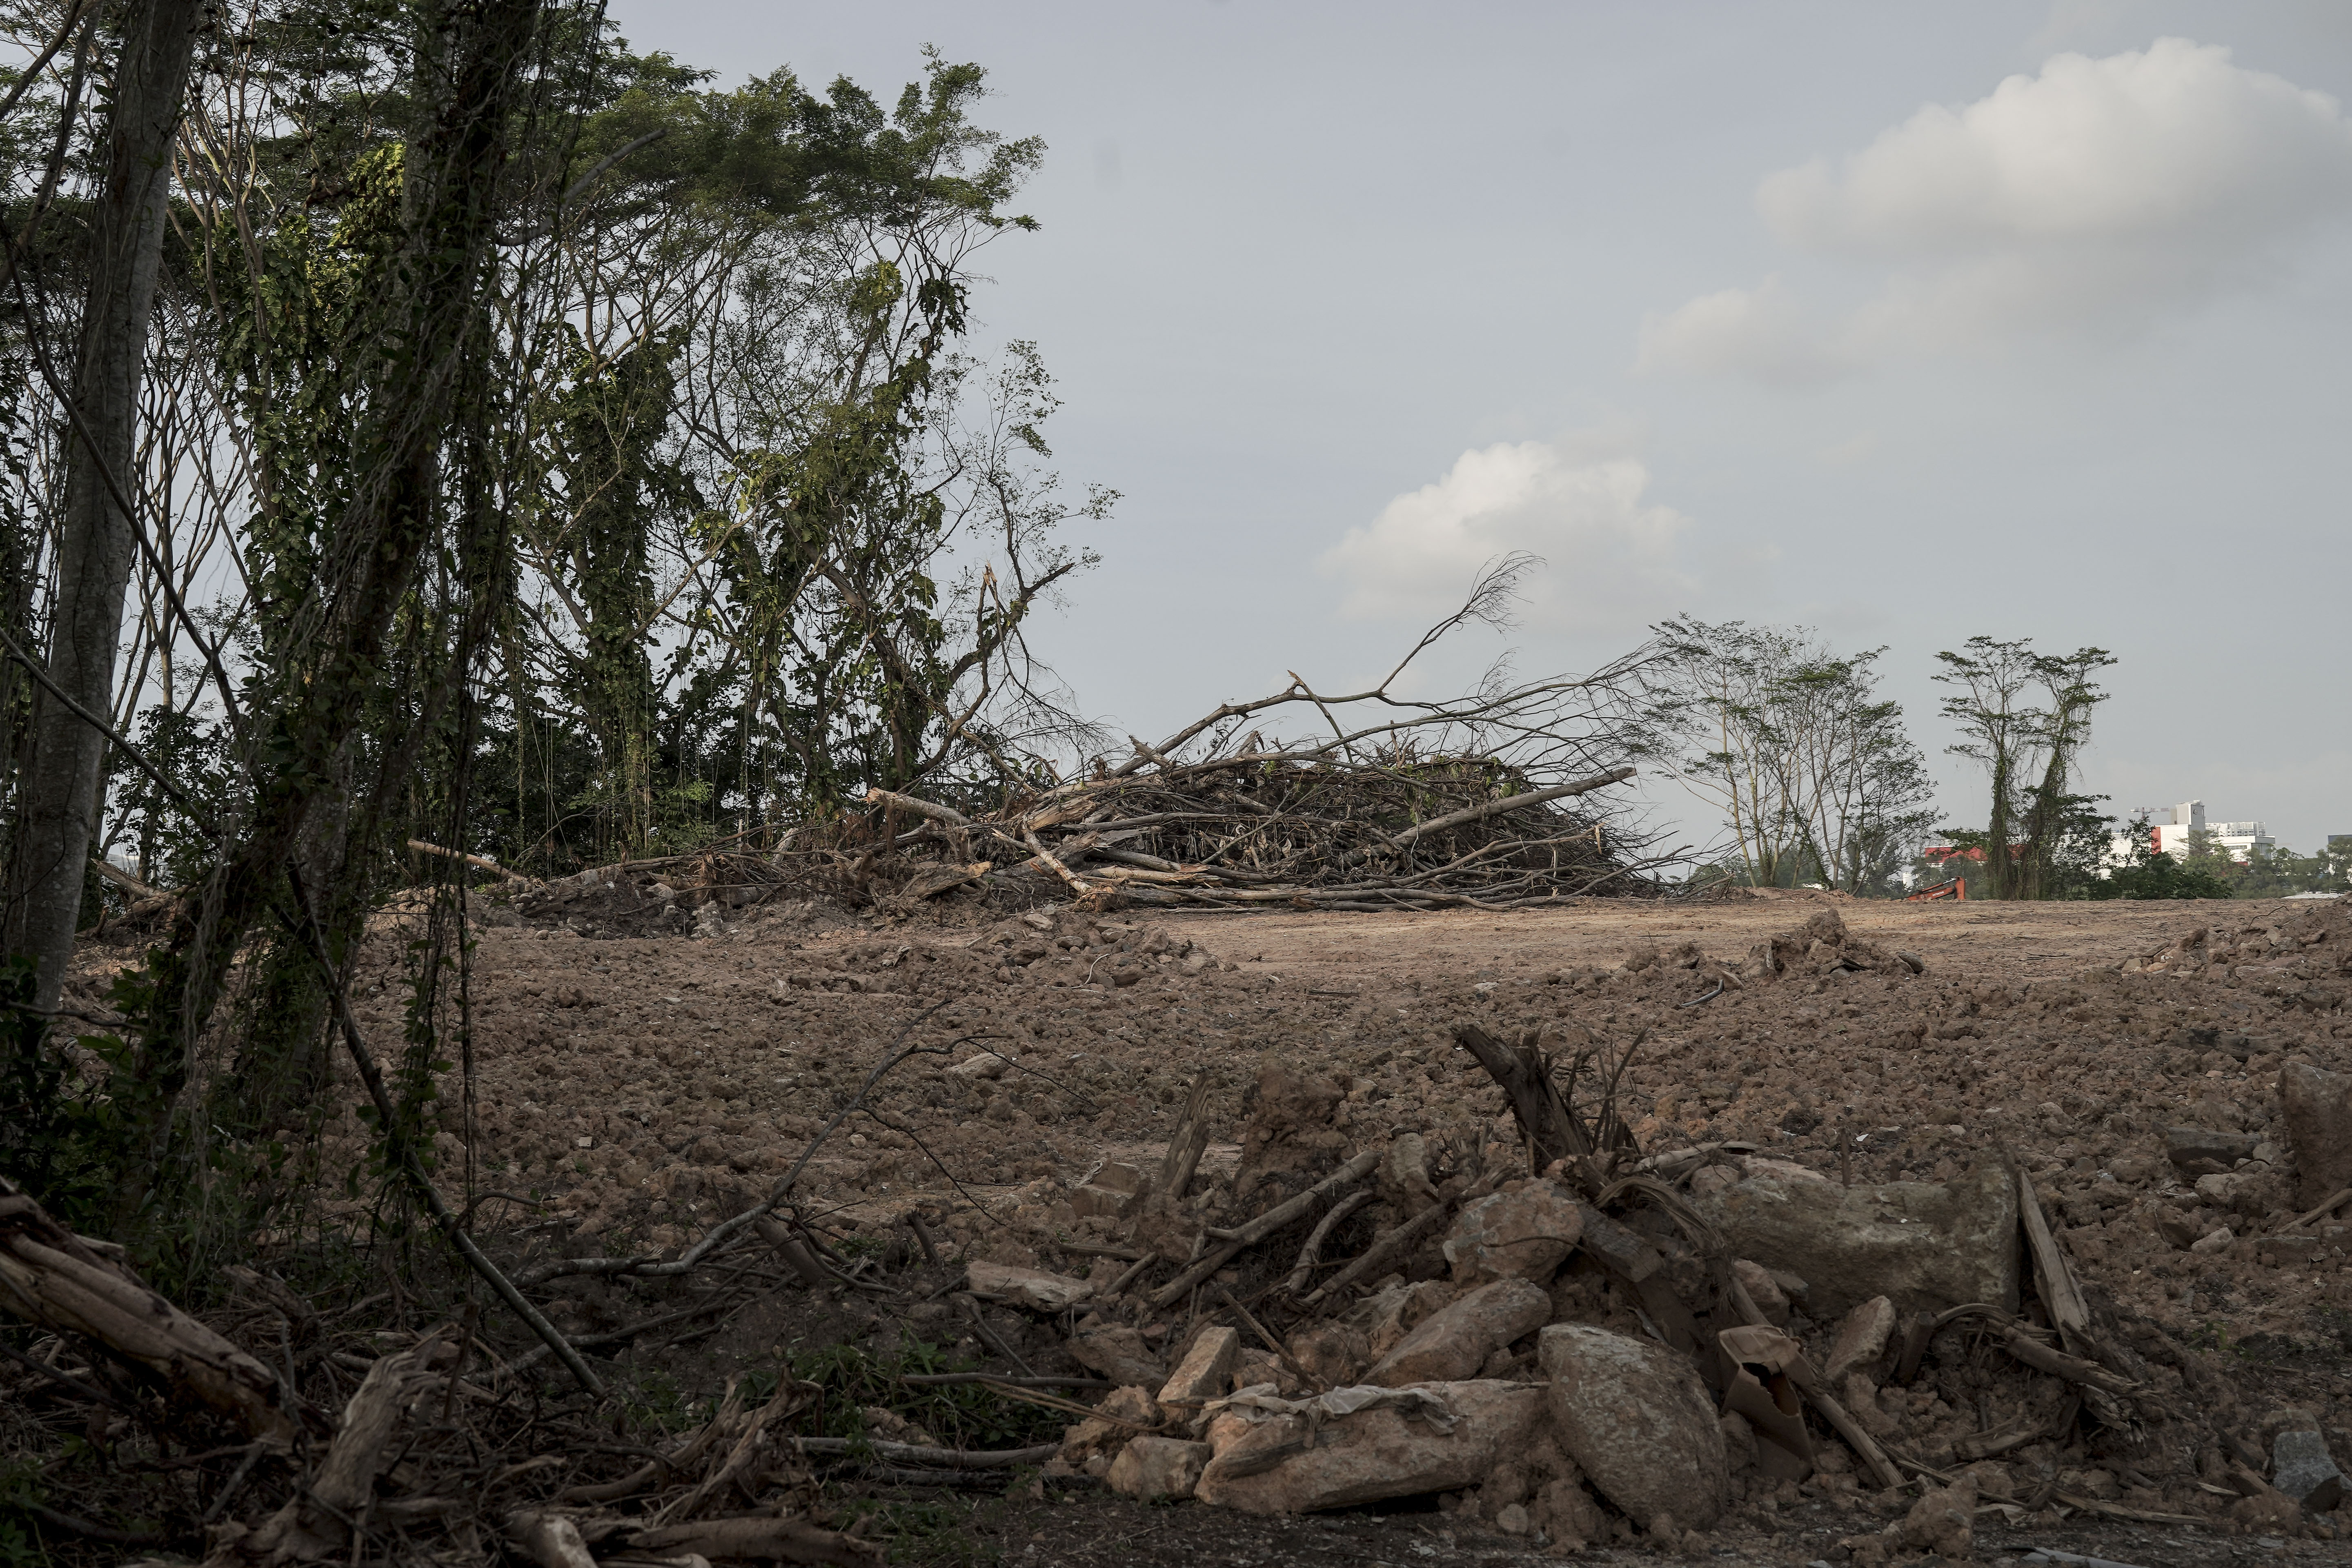 The destroyed forest.